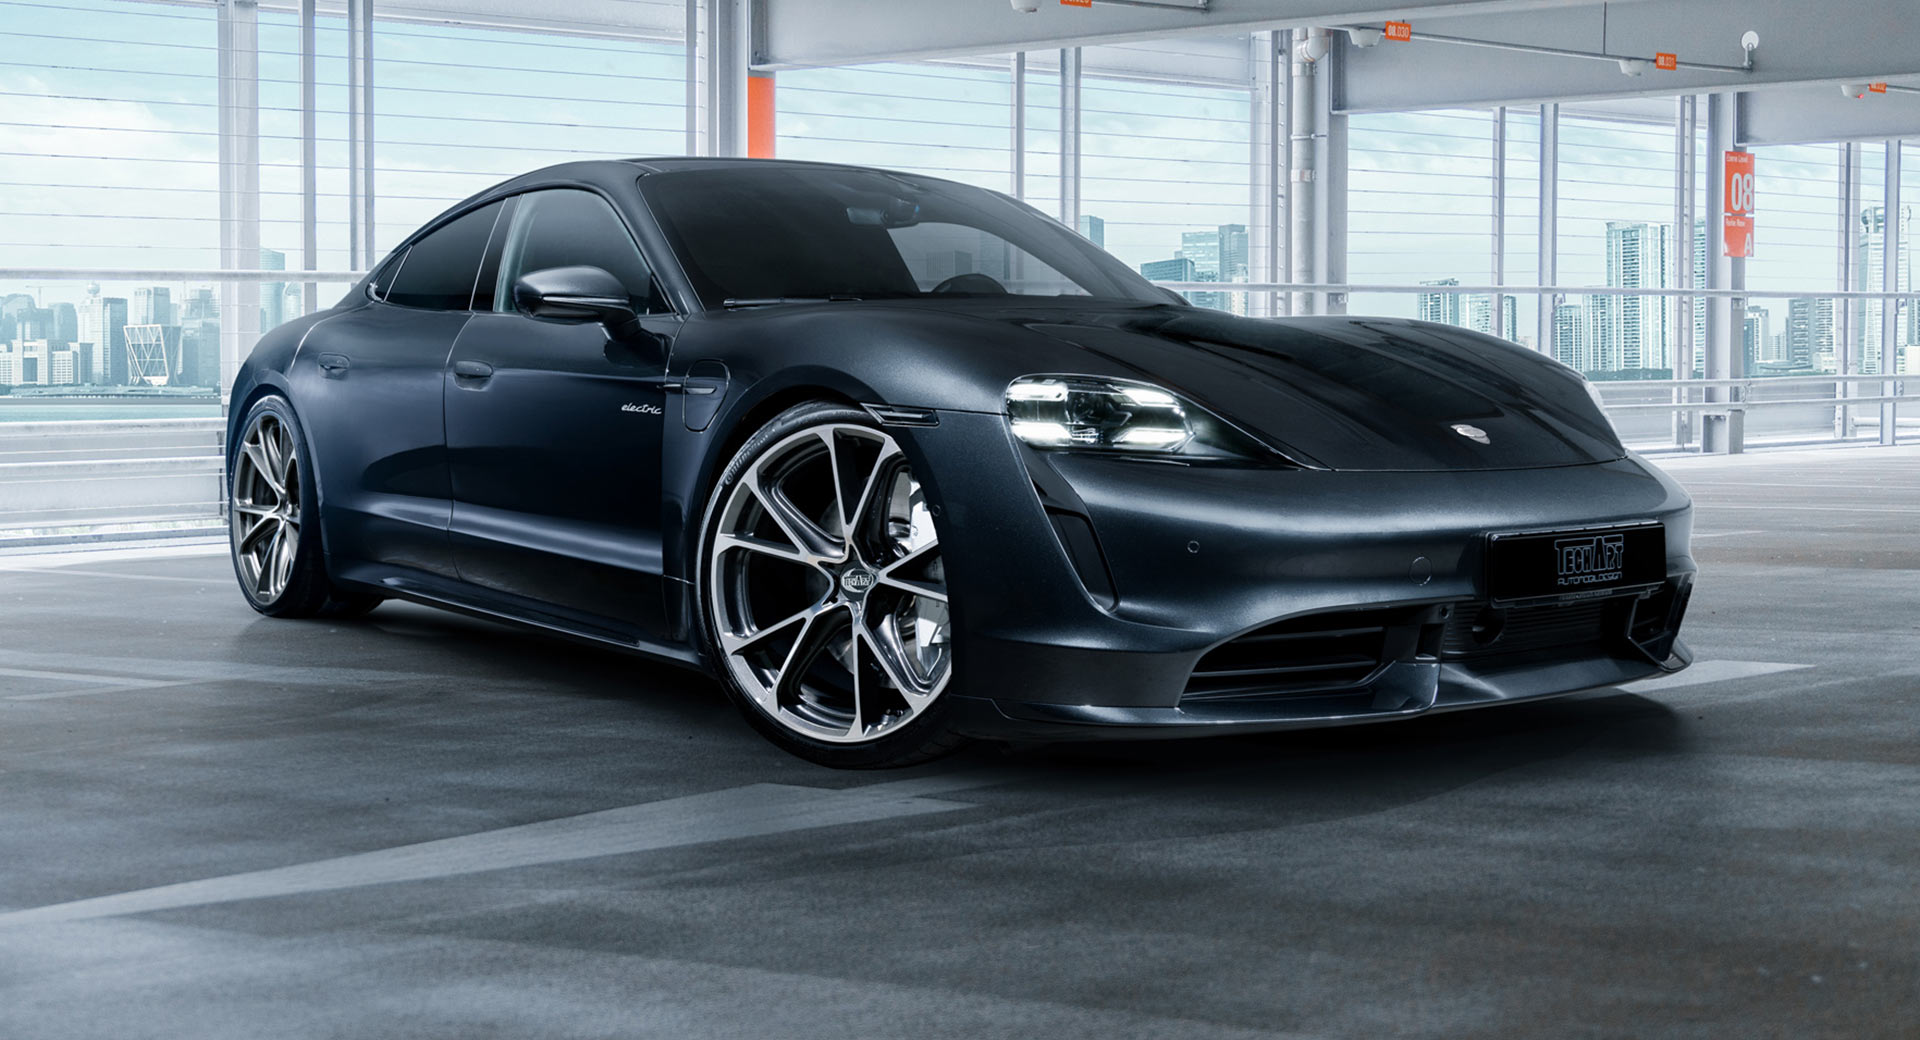 Techart Gives The Porsche Taycan New Wheels Is Working On Other Upgrades Carscoops